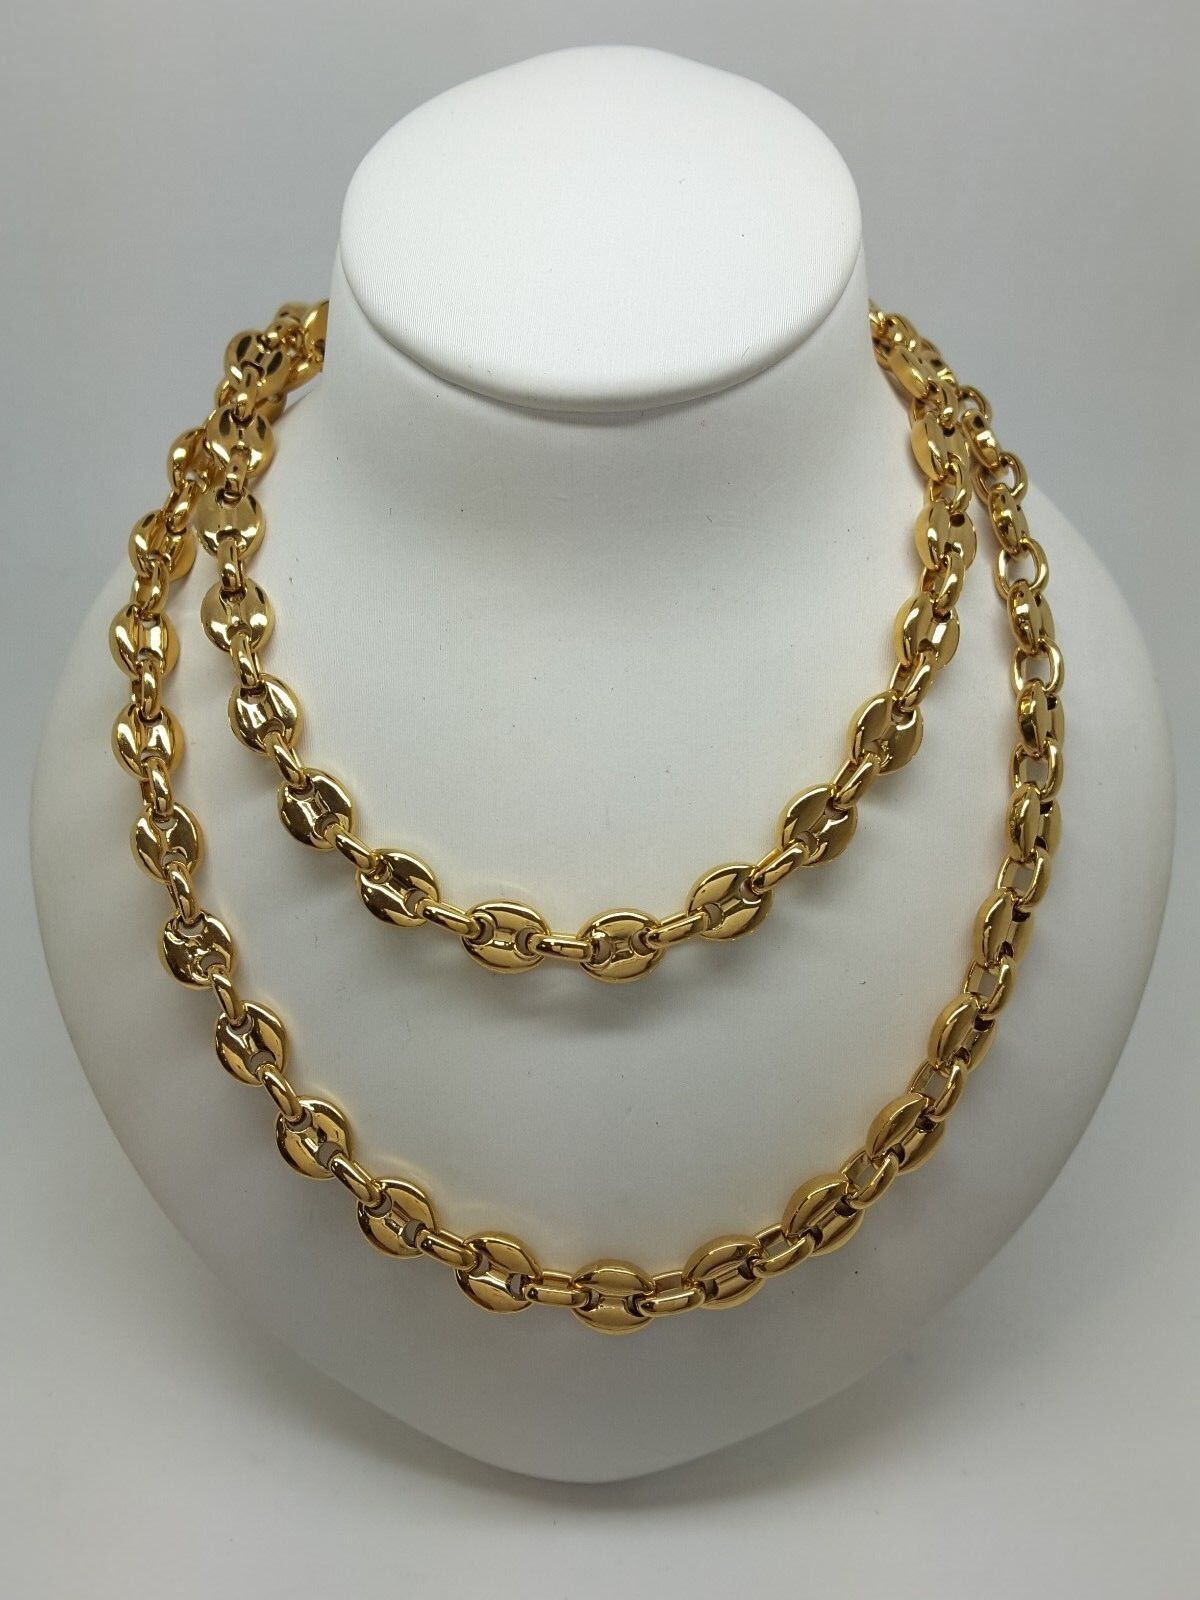 Miran 300245 Stainless Steel gold Plated Anchor Chain 55cm 34.3g RRP  70